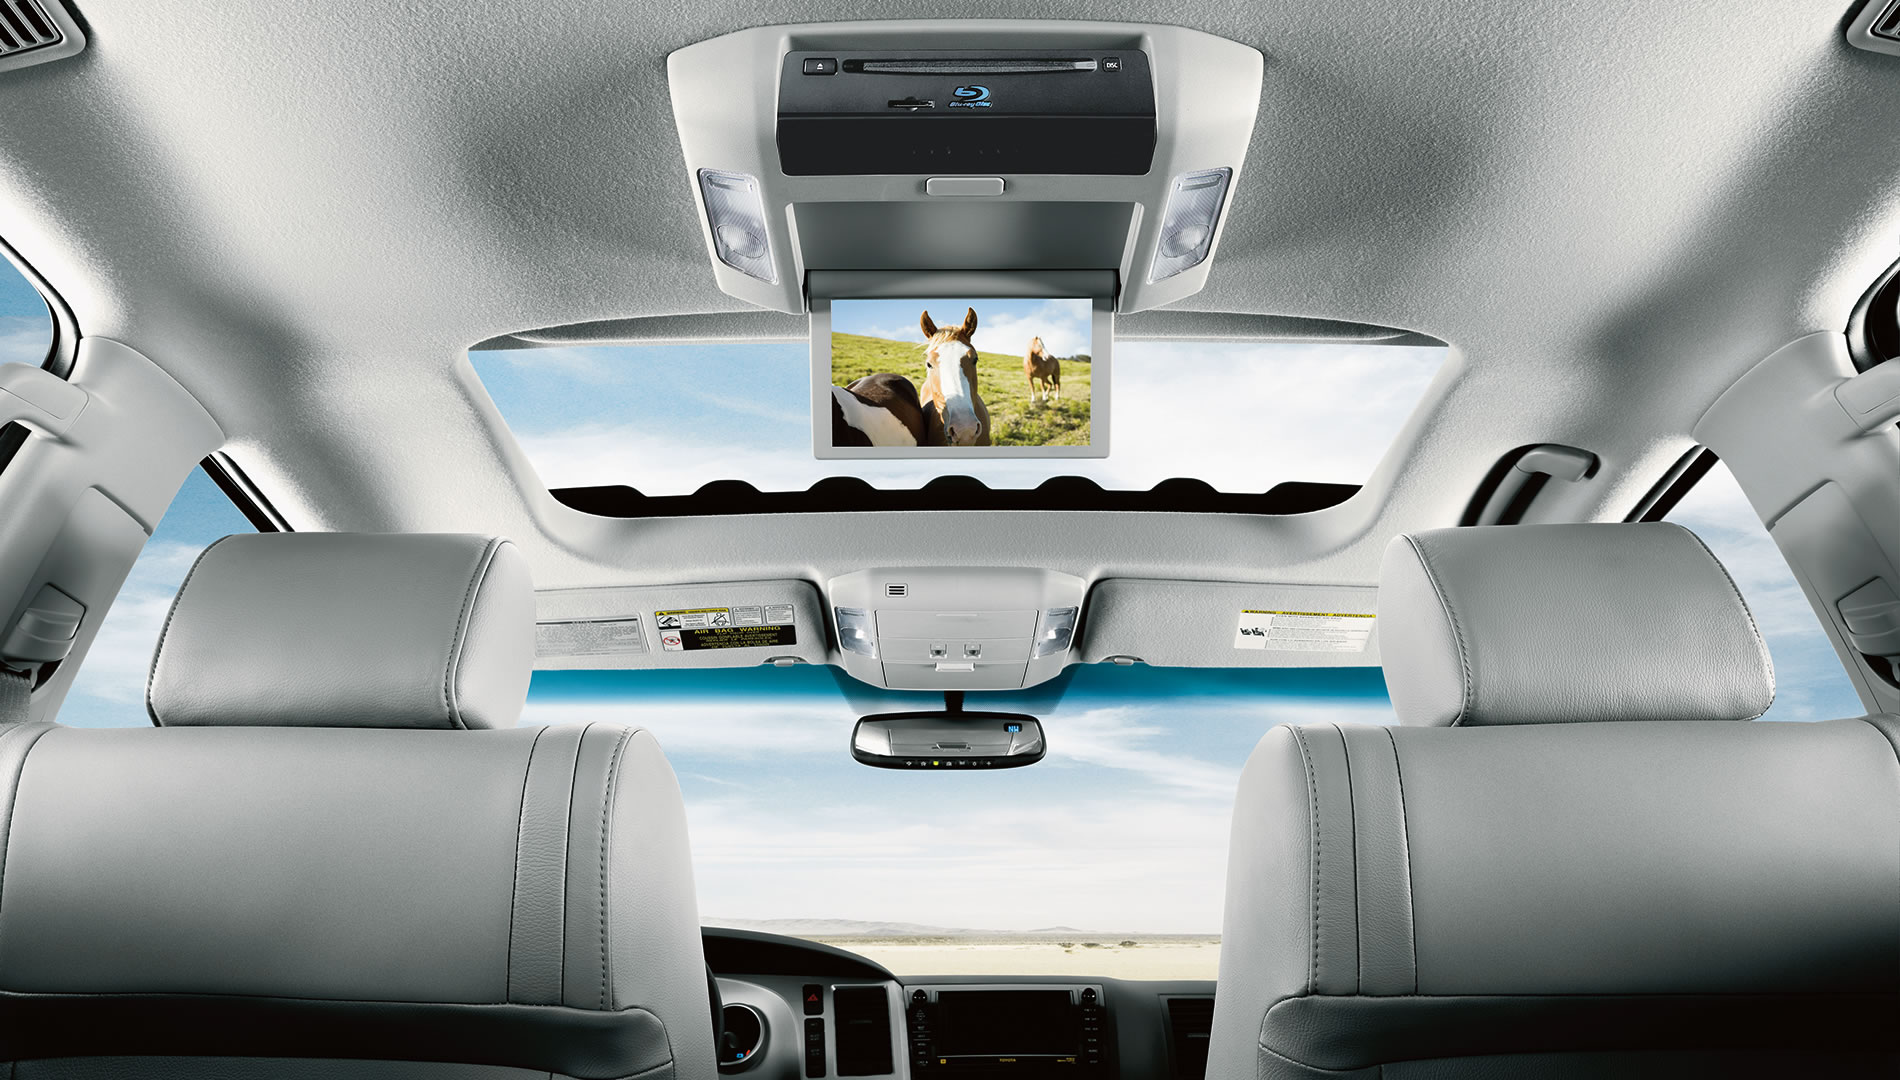 2015-toyota-sequoia-blu-ray-player